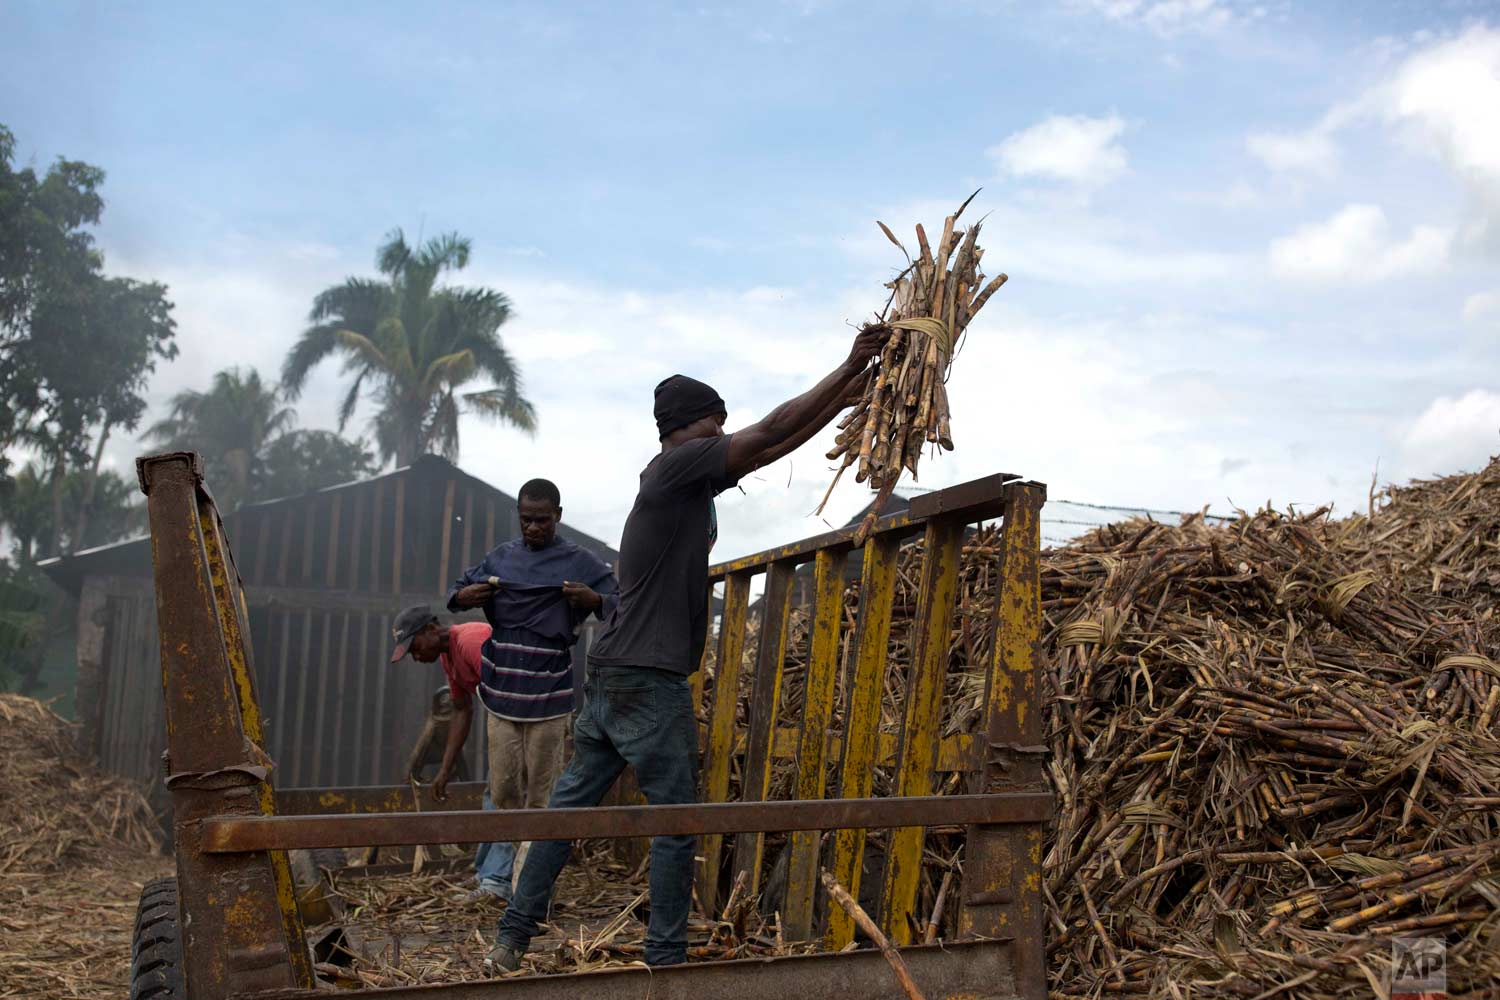 In this June 16, 2017 photo, workers unload sugar cane at the Ti Jean distillery, which produces clairin, a sugar-based alcoholic drink in Leogane, Haiti. Workers said that they earn a salary of 800 gourds, or $12.50 dollars, for each truck they fill with cane and that they manage to fill one truck in two days. (AP Photo/Dieu Nalio Chery)